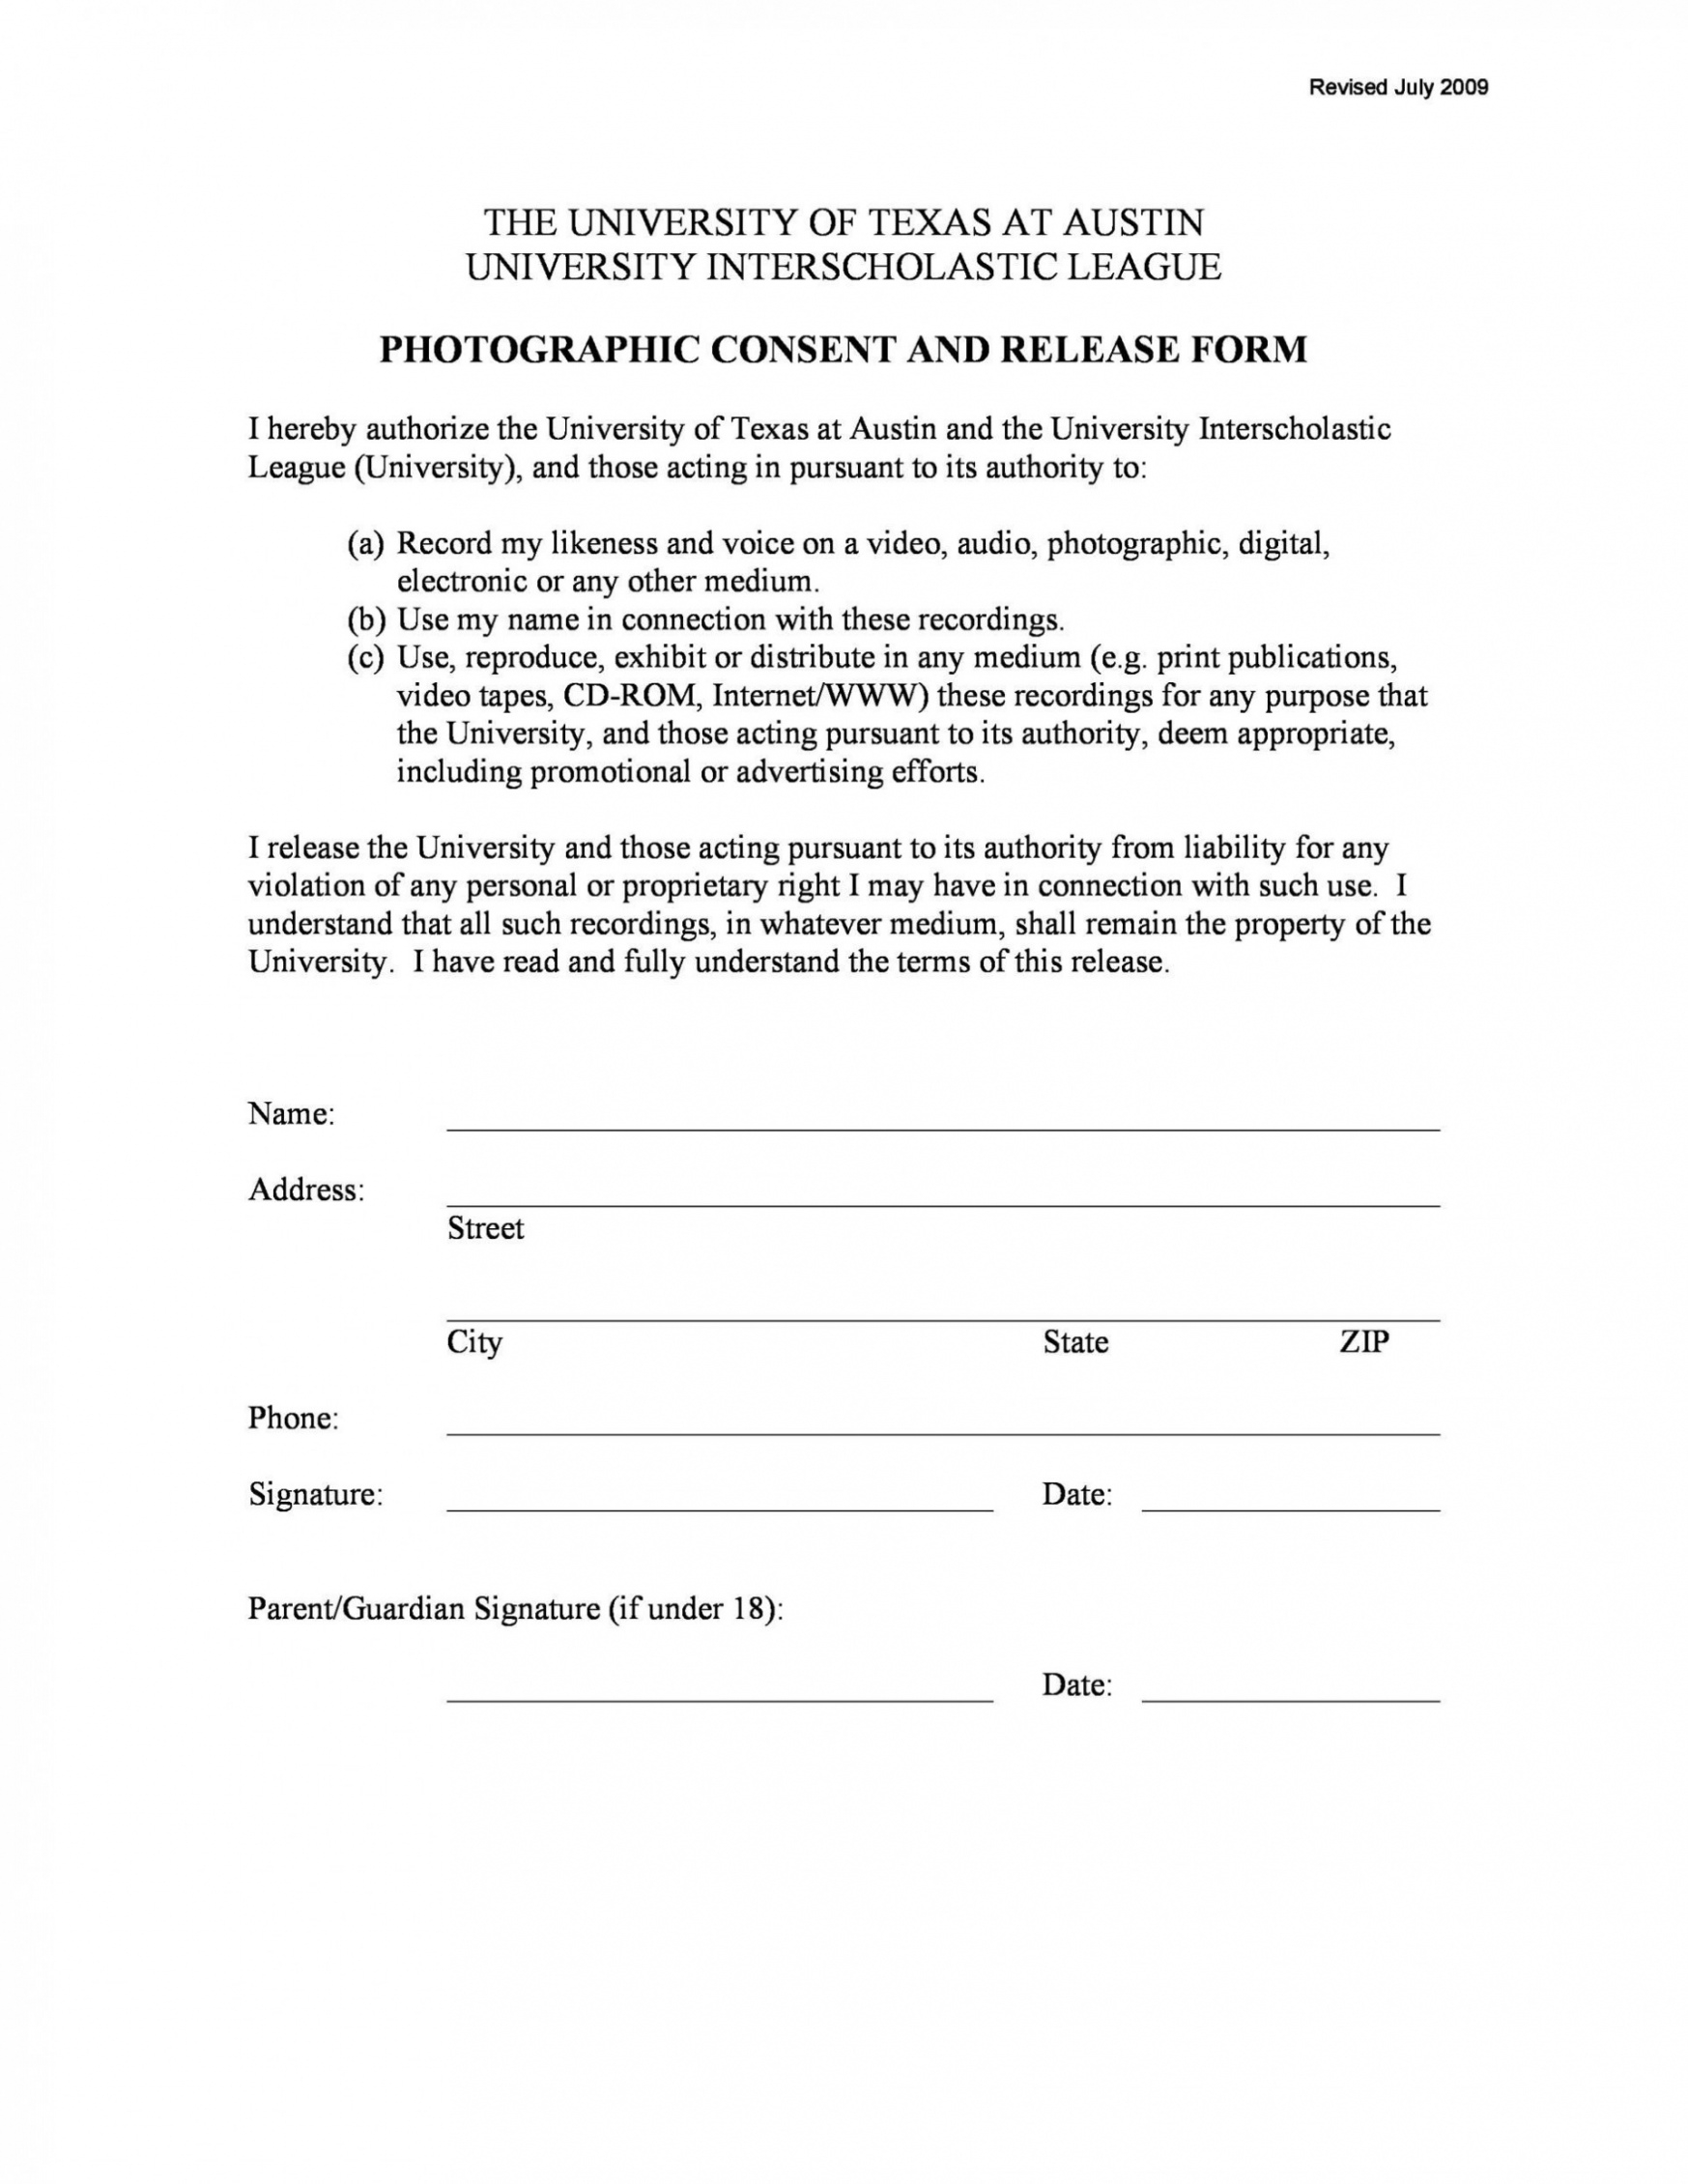 photo release form template ~ addictionary material release form template example